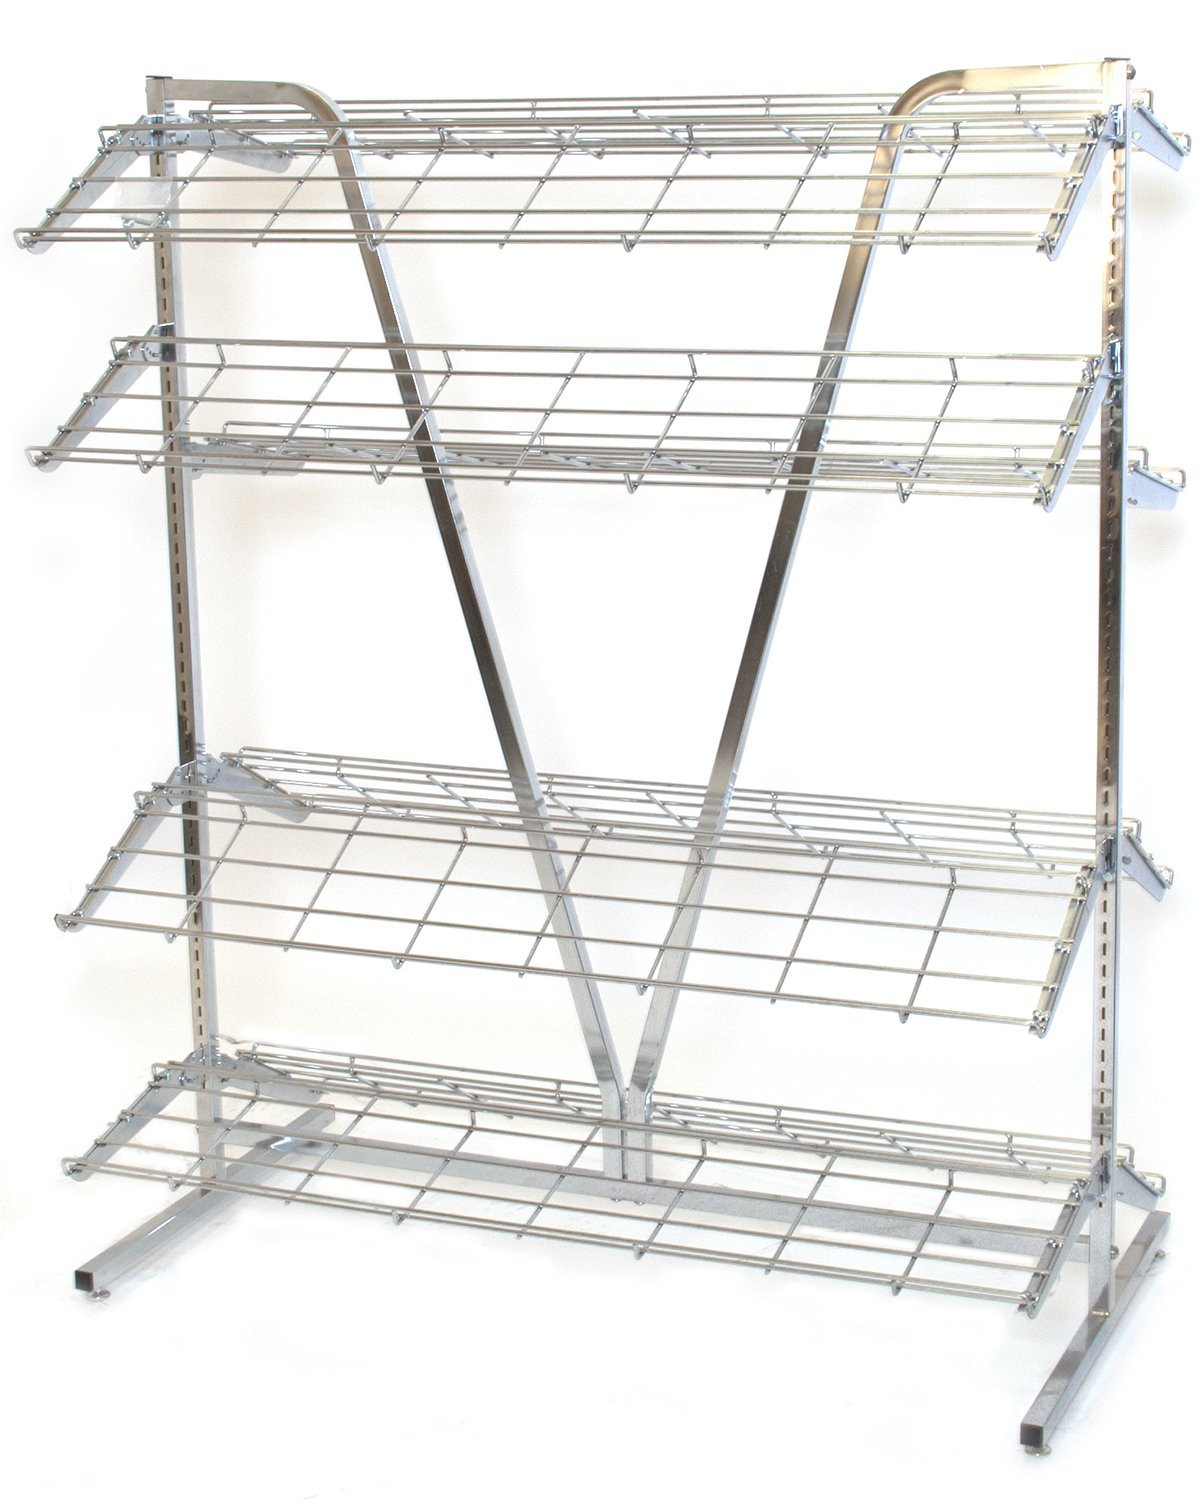 KC Store Fixtures 28620 Shoe Rack, 2-Sided, 4' Wide x 66'' High and Includes 8'-12' Deep Shelves, Chrome